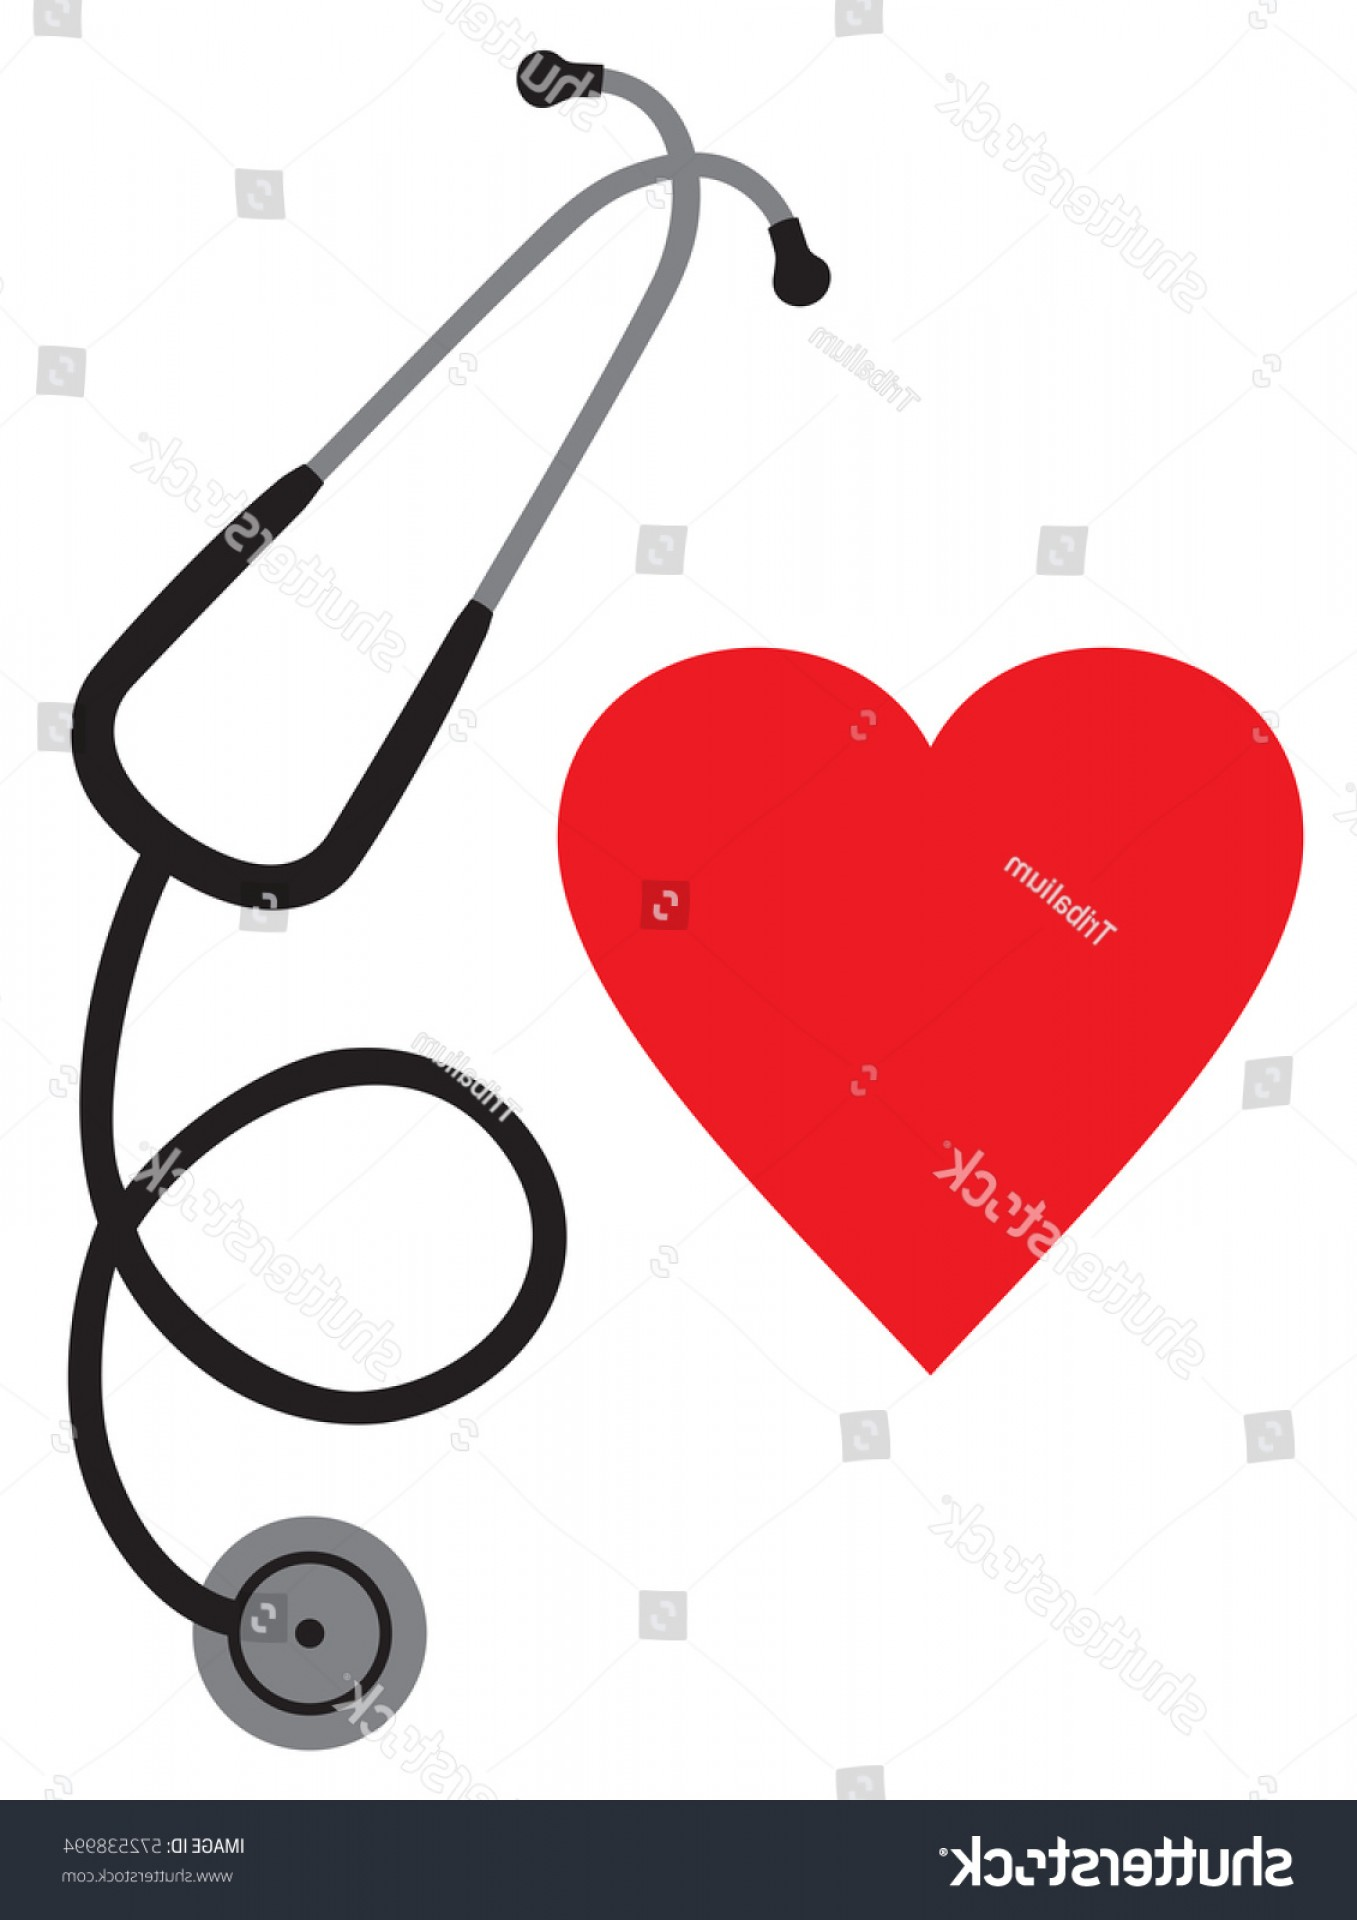 Stethoscope With Heart Vector Art: Doctors Stethoscope Heart Vector Icon